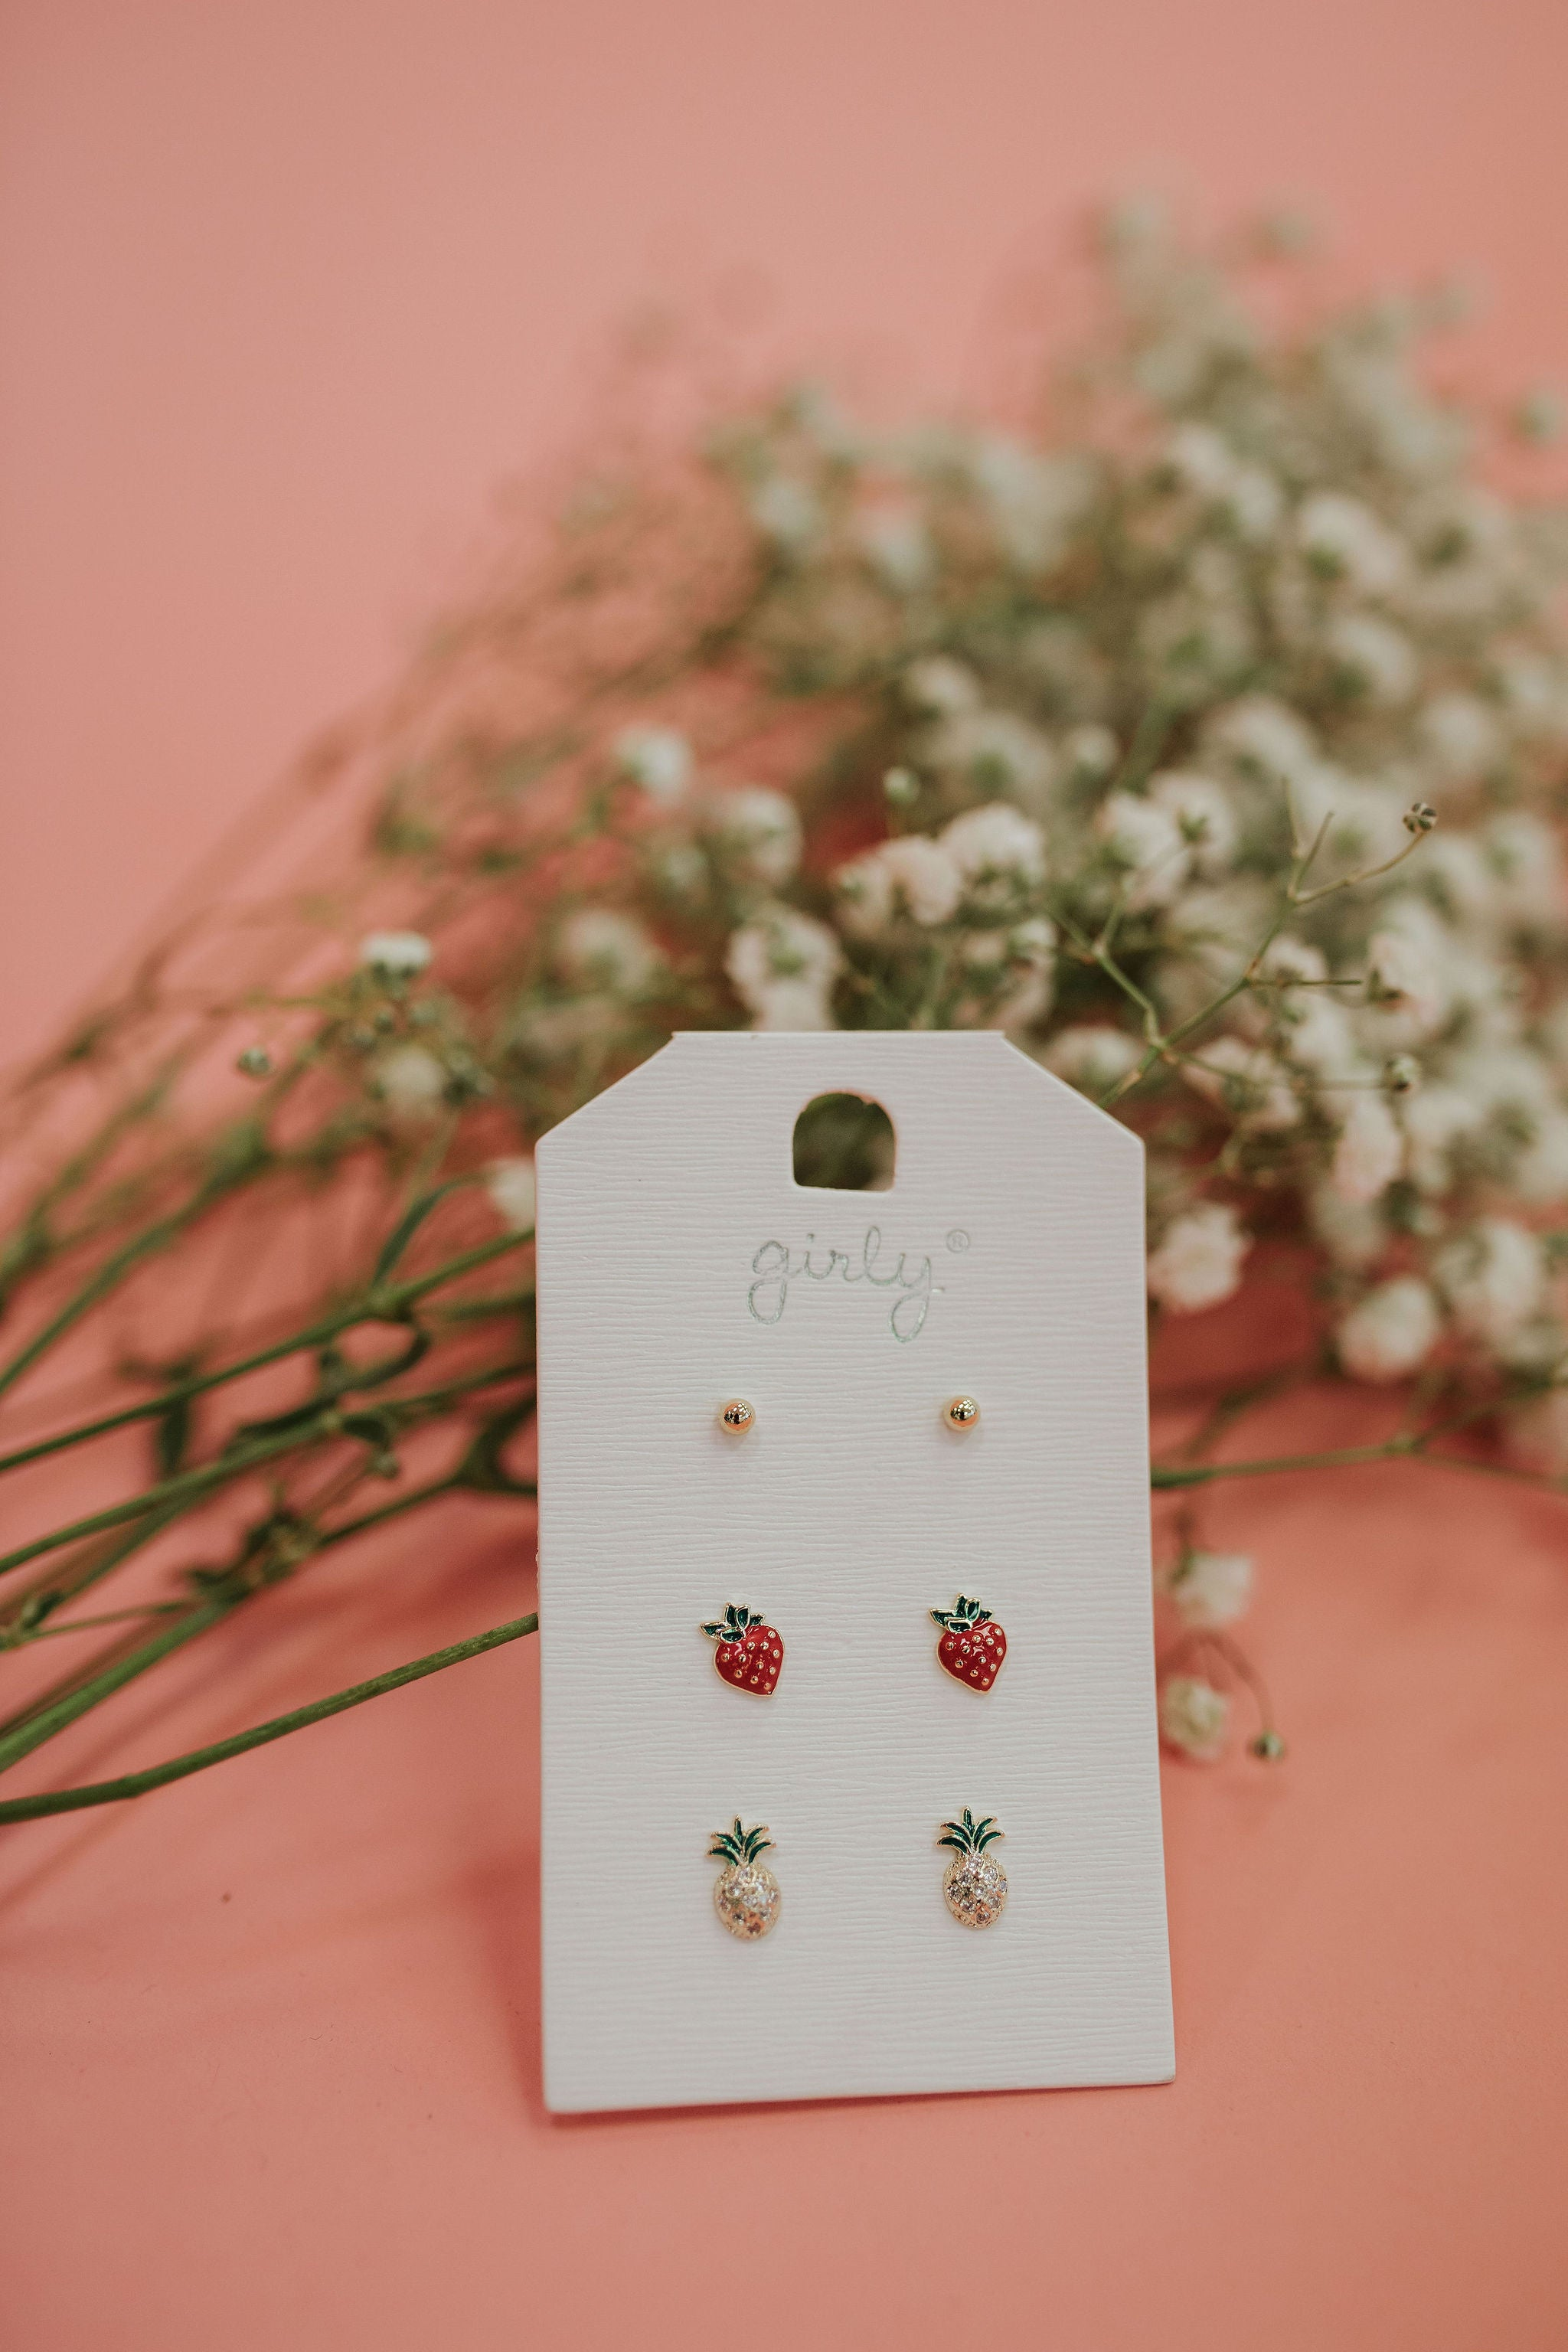 THE DAINTY FRUIT STUD EARRING SET